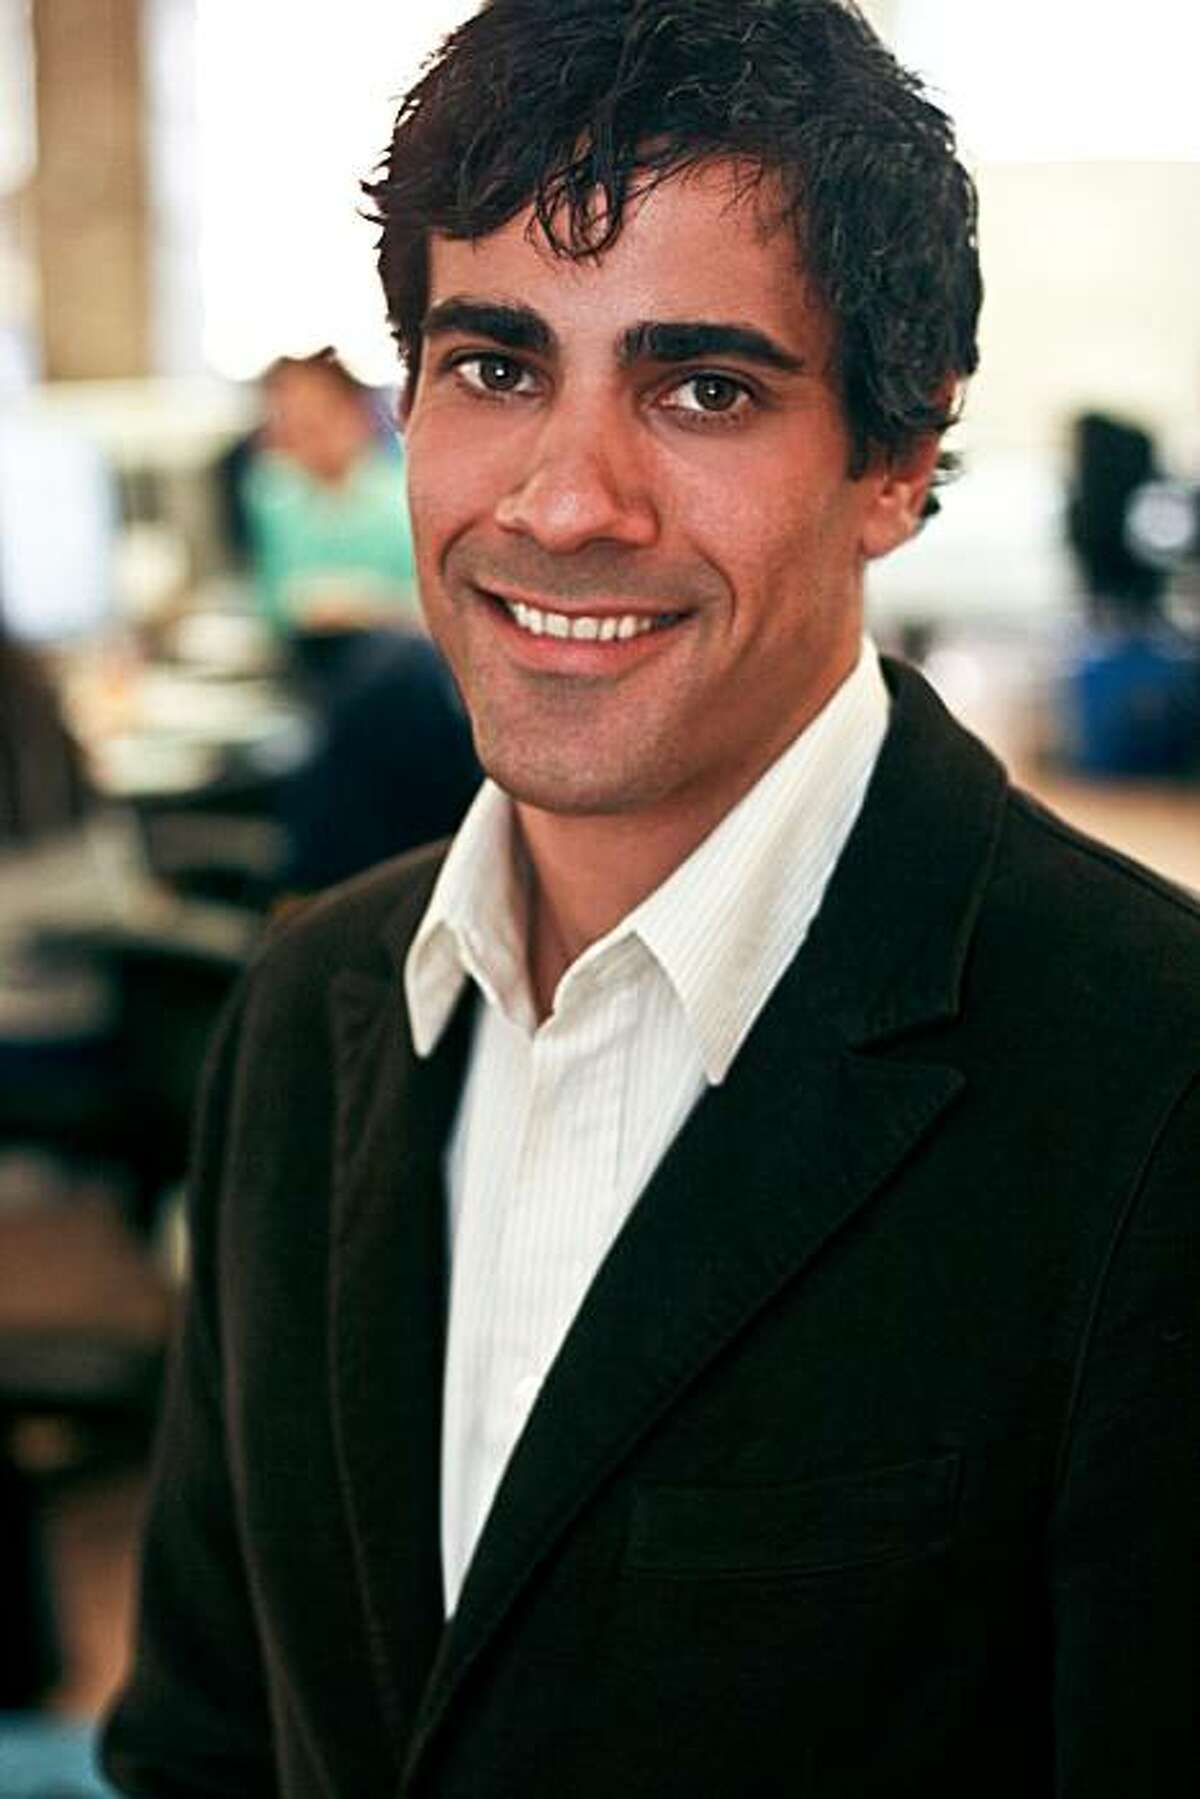 Jeremy Stoppelman, CEO of Yelp, San Francisco